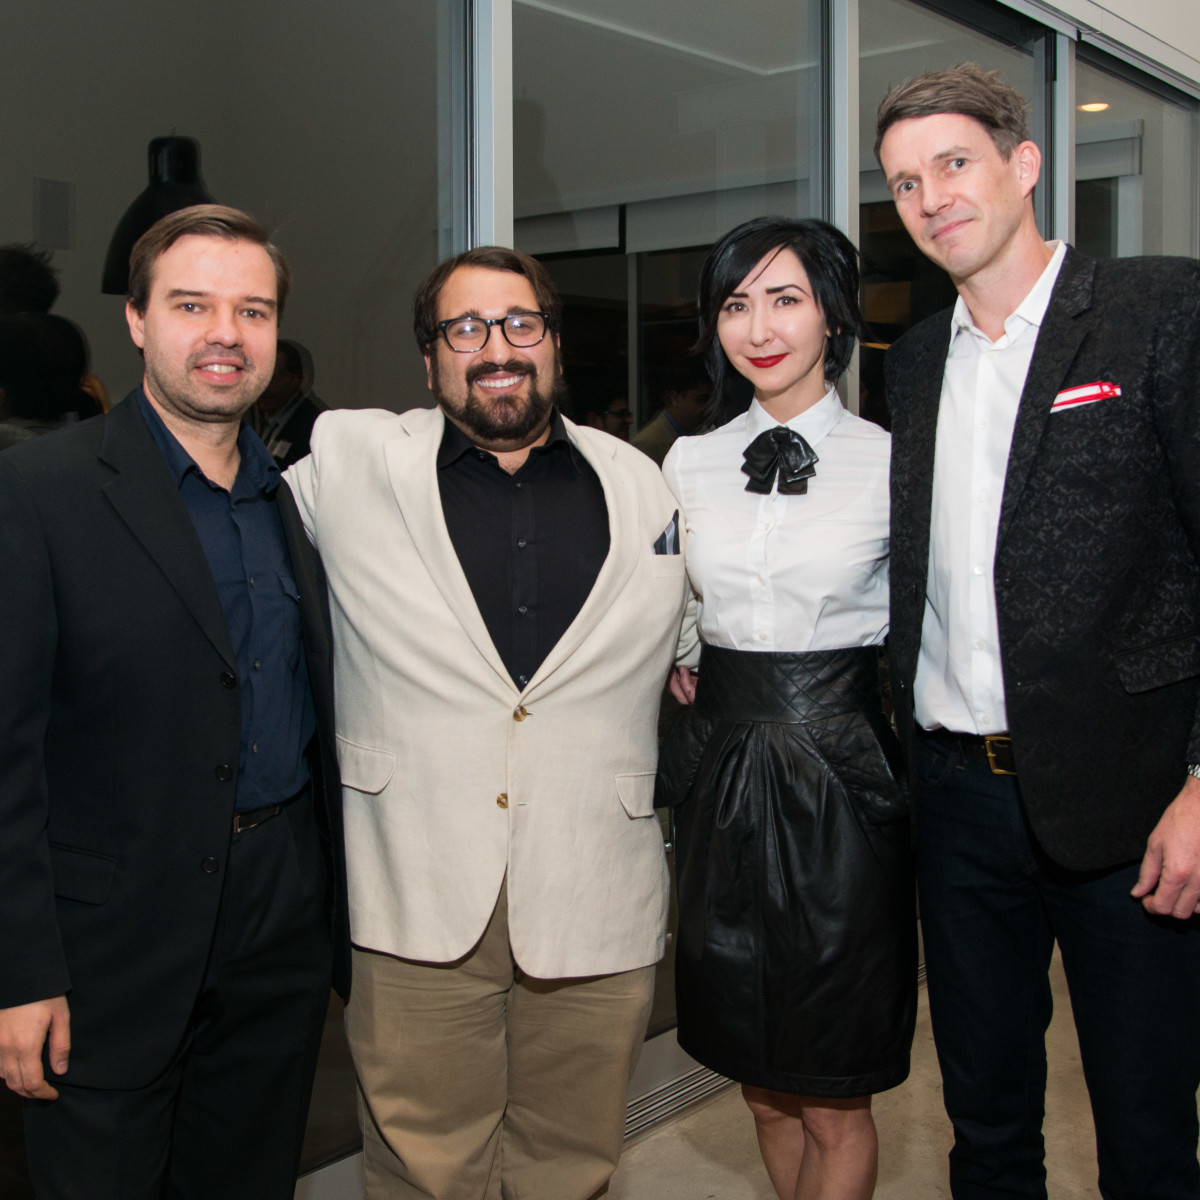 Houston, HGO Young Patrons event, October 2015, Kirill Kuzmin, Chris Bozeka, Carrie Brandsberg-Dahl, Sverre Brandsberg-Dahl